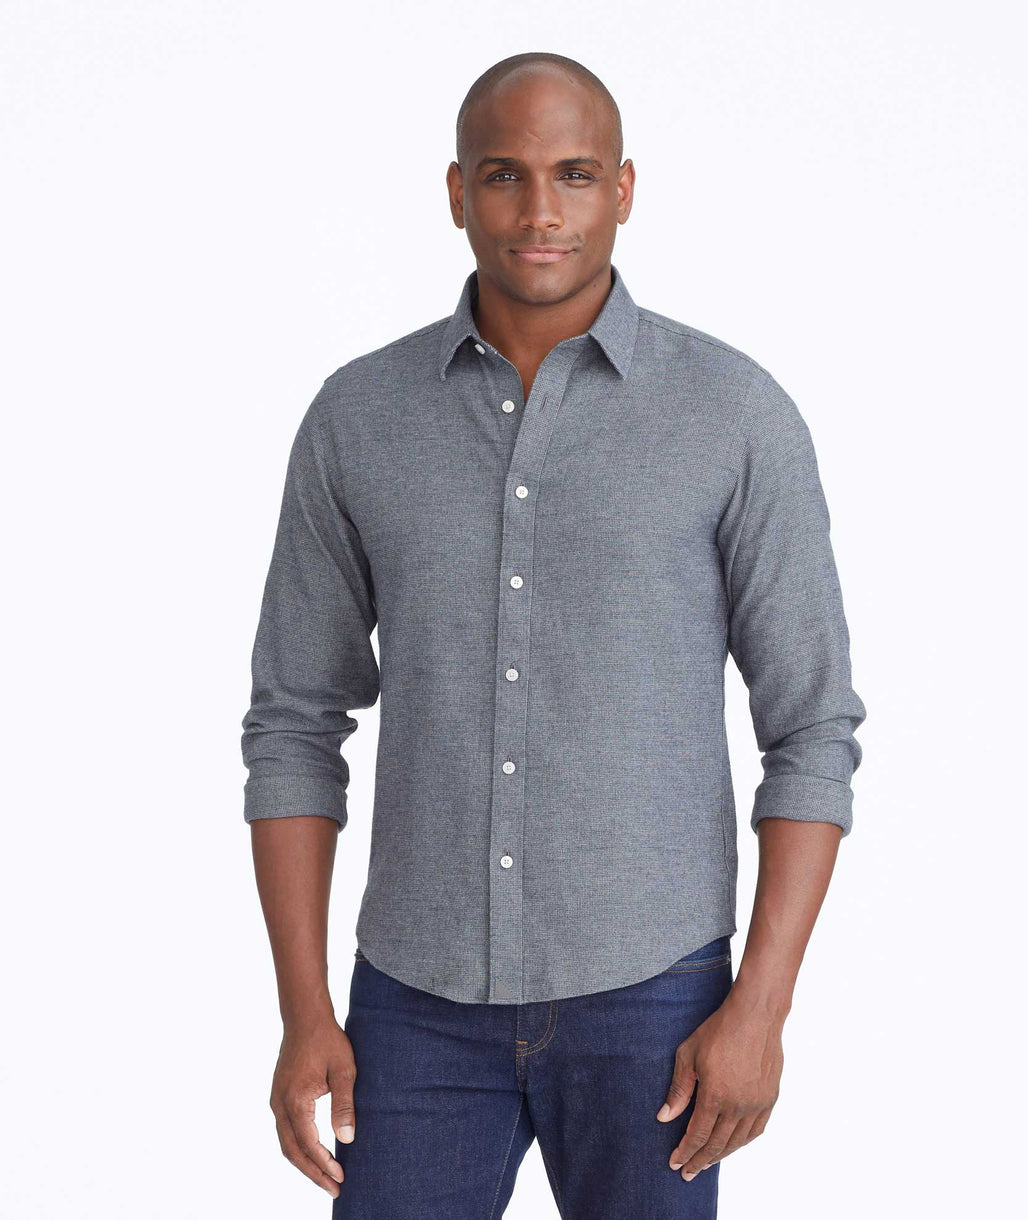 Model wearing a Dark Grey Wrinkle-Free Veneto Shirt